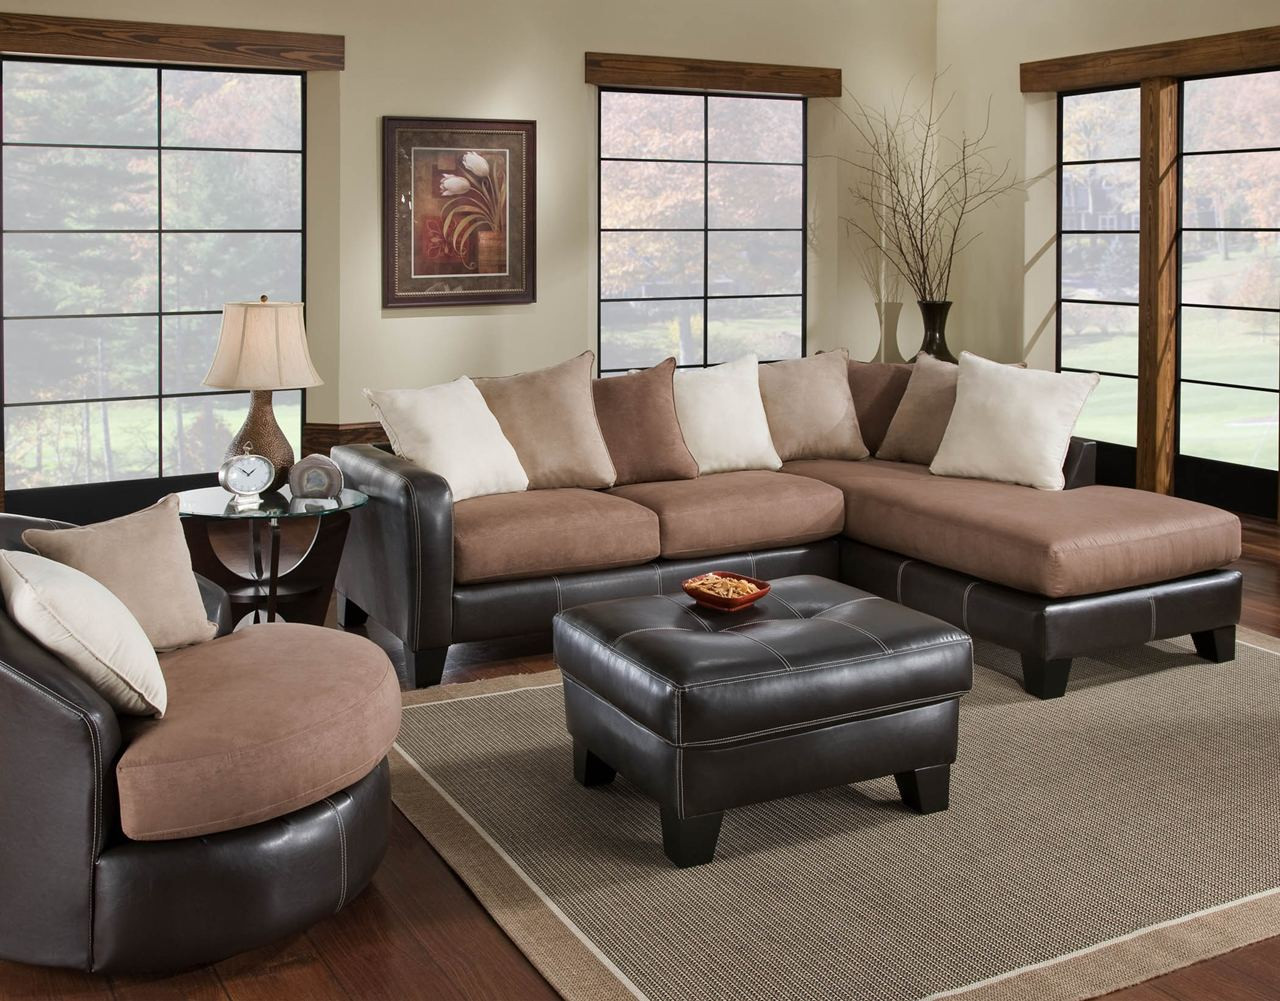 Best ideas about Cheap Living Room Furniture . Save or Pin Ava Furniture Houston Cheap Discount Living Room Set 360 Now.